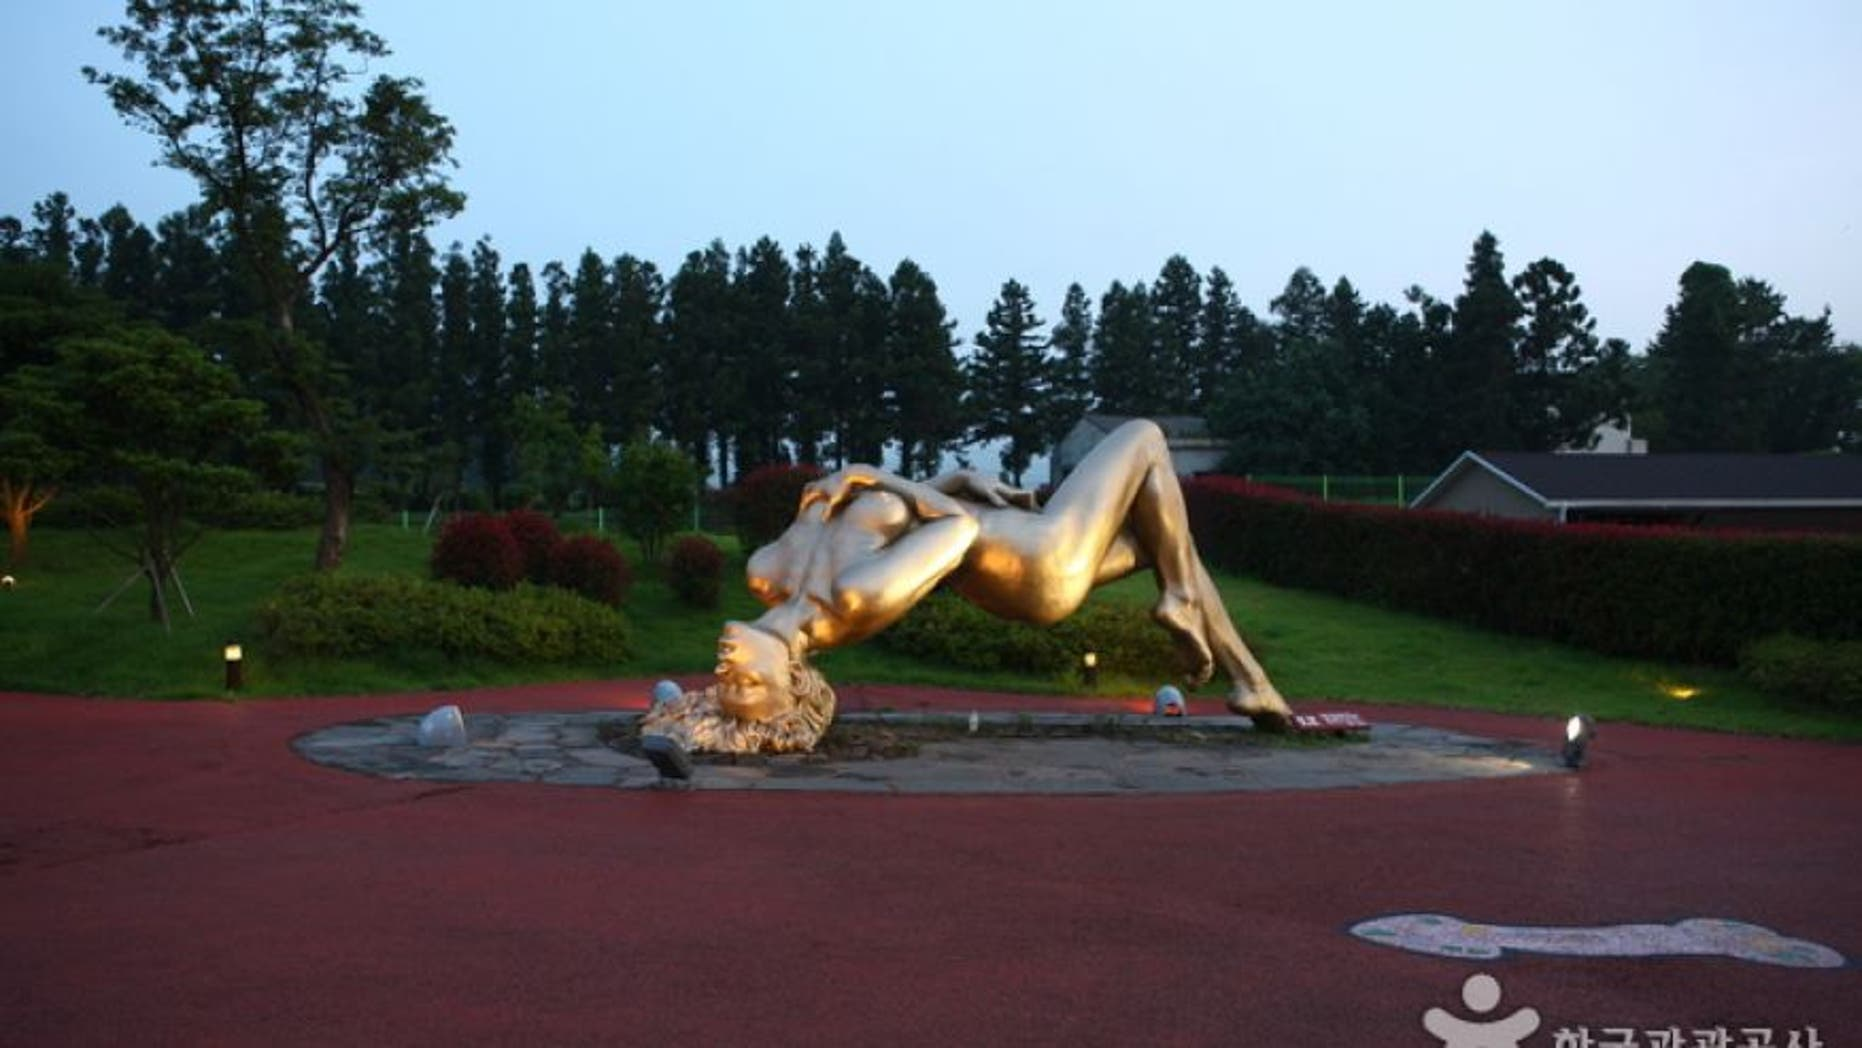 Taiwan's proposed park is likely to be modeled on Jeju Loveland in South Korea that has over 140 sculptures dedicated to sex and lovemaking.